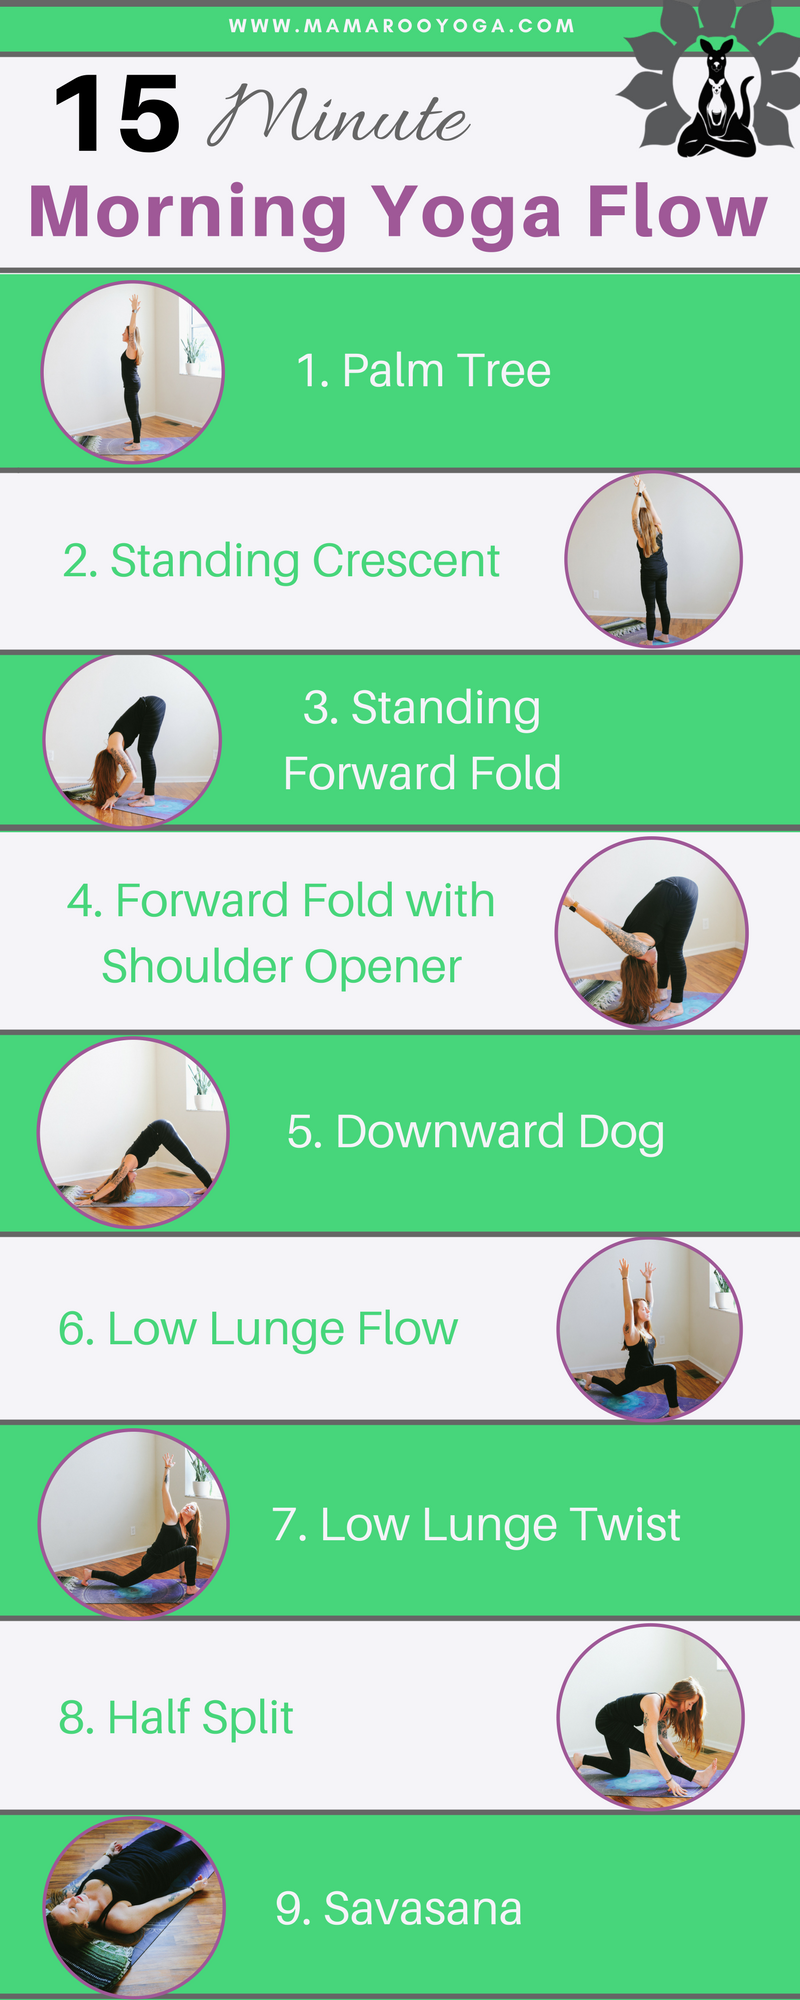 15 Minute Morning Yoga Flow Graphic